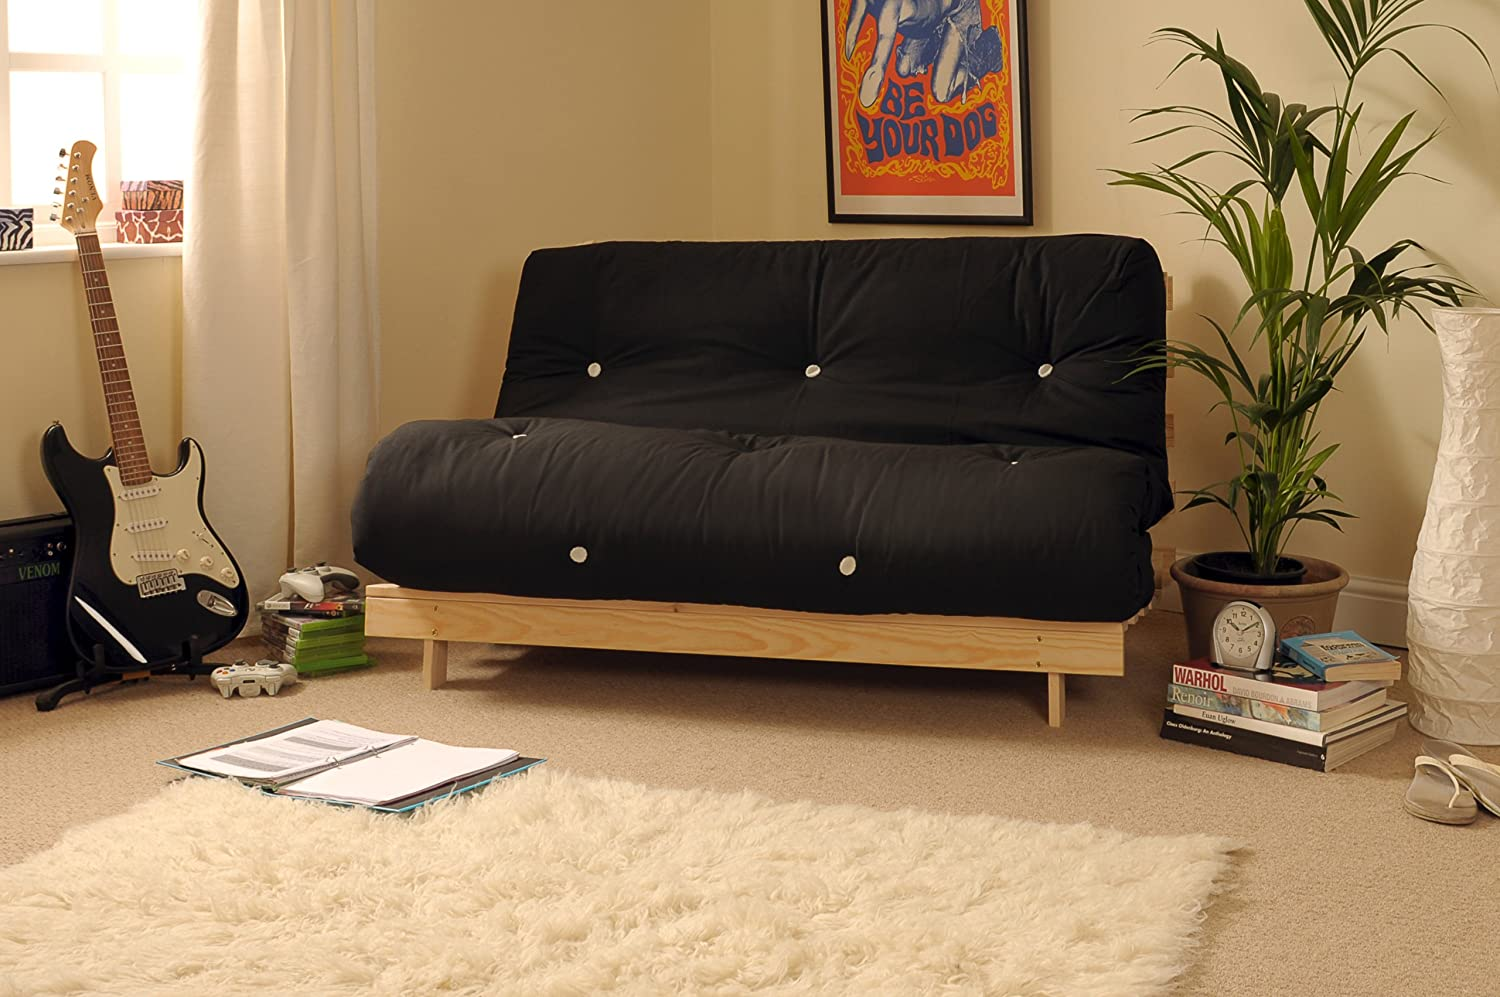 4ft6 (135cm) Double Wooden Futon with BLACK Mattress Comfy Living